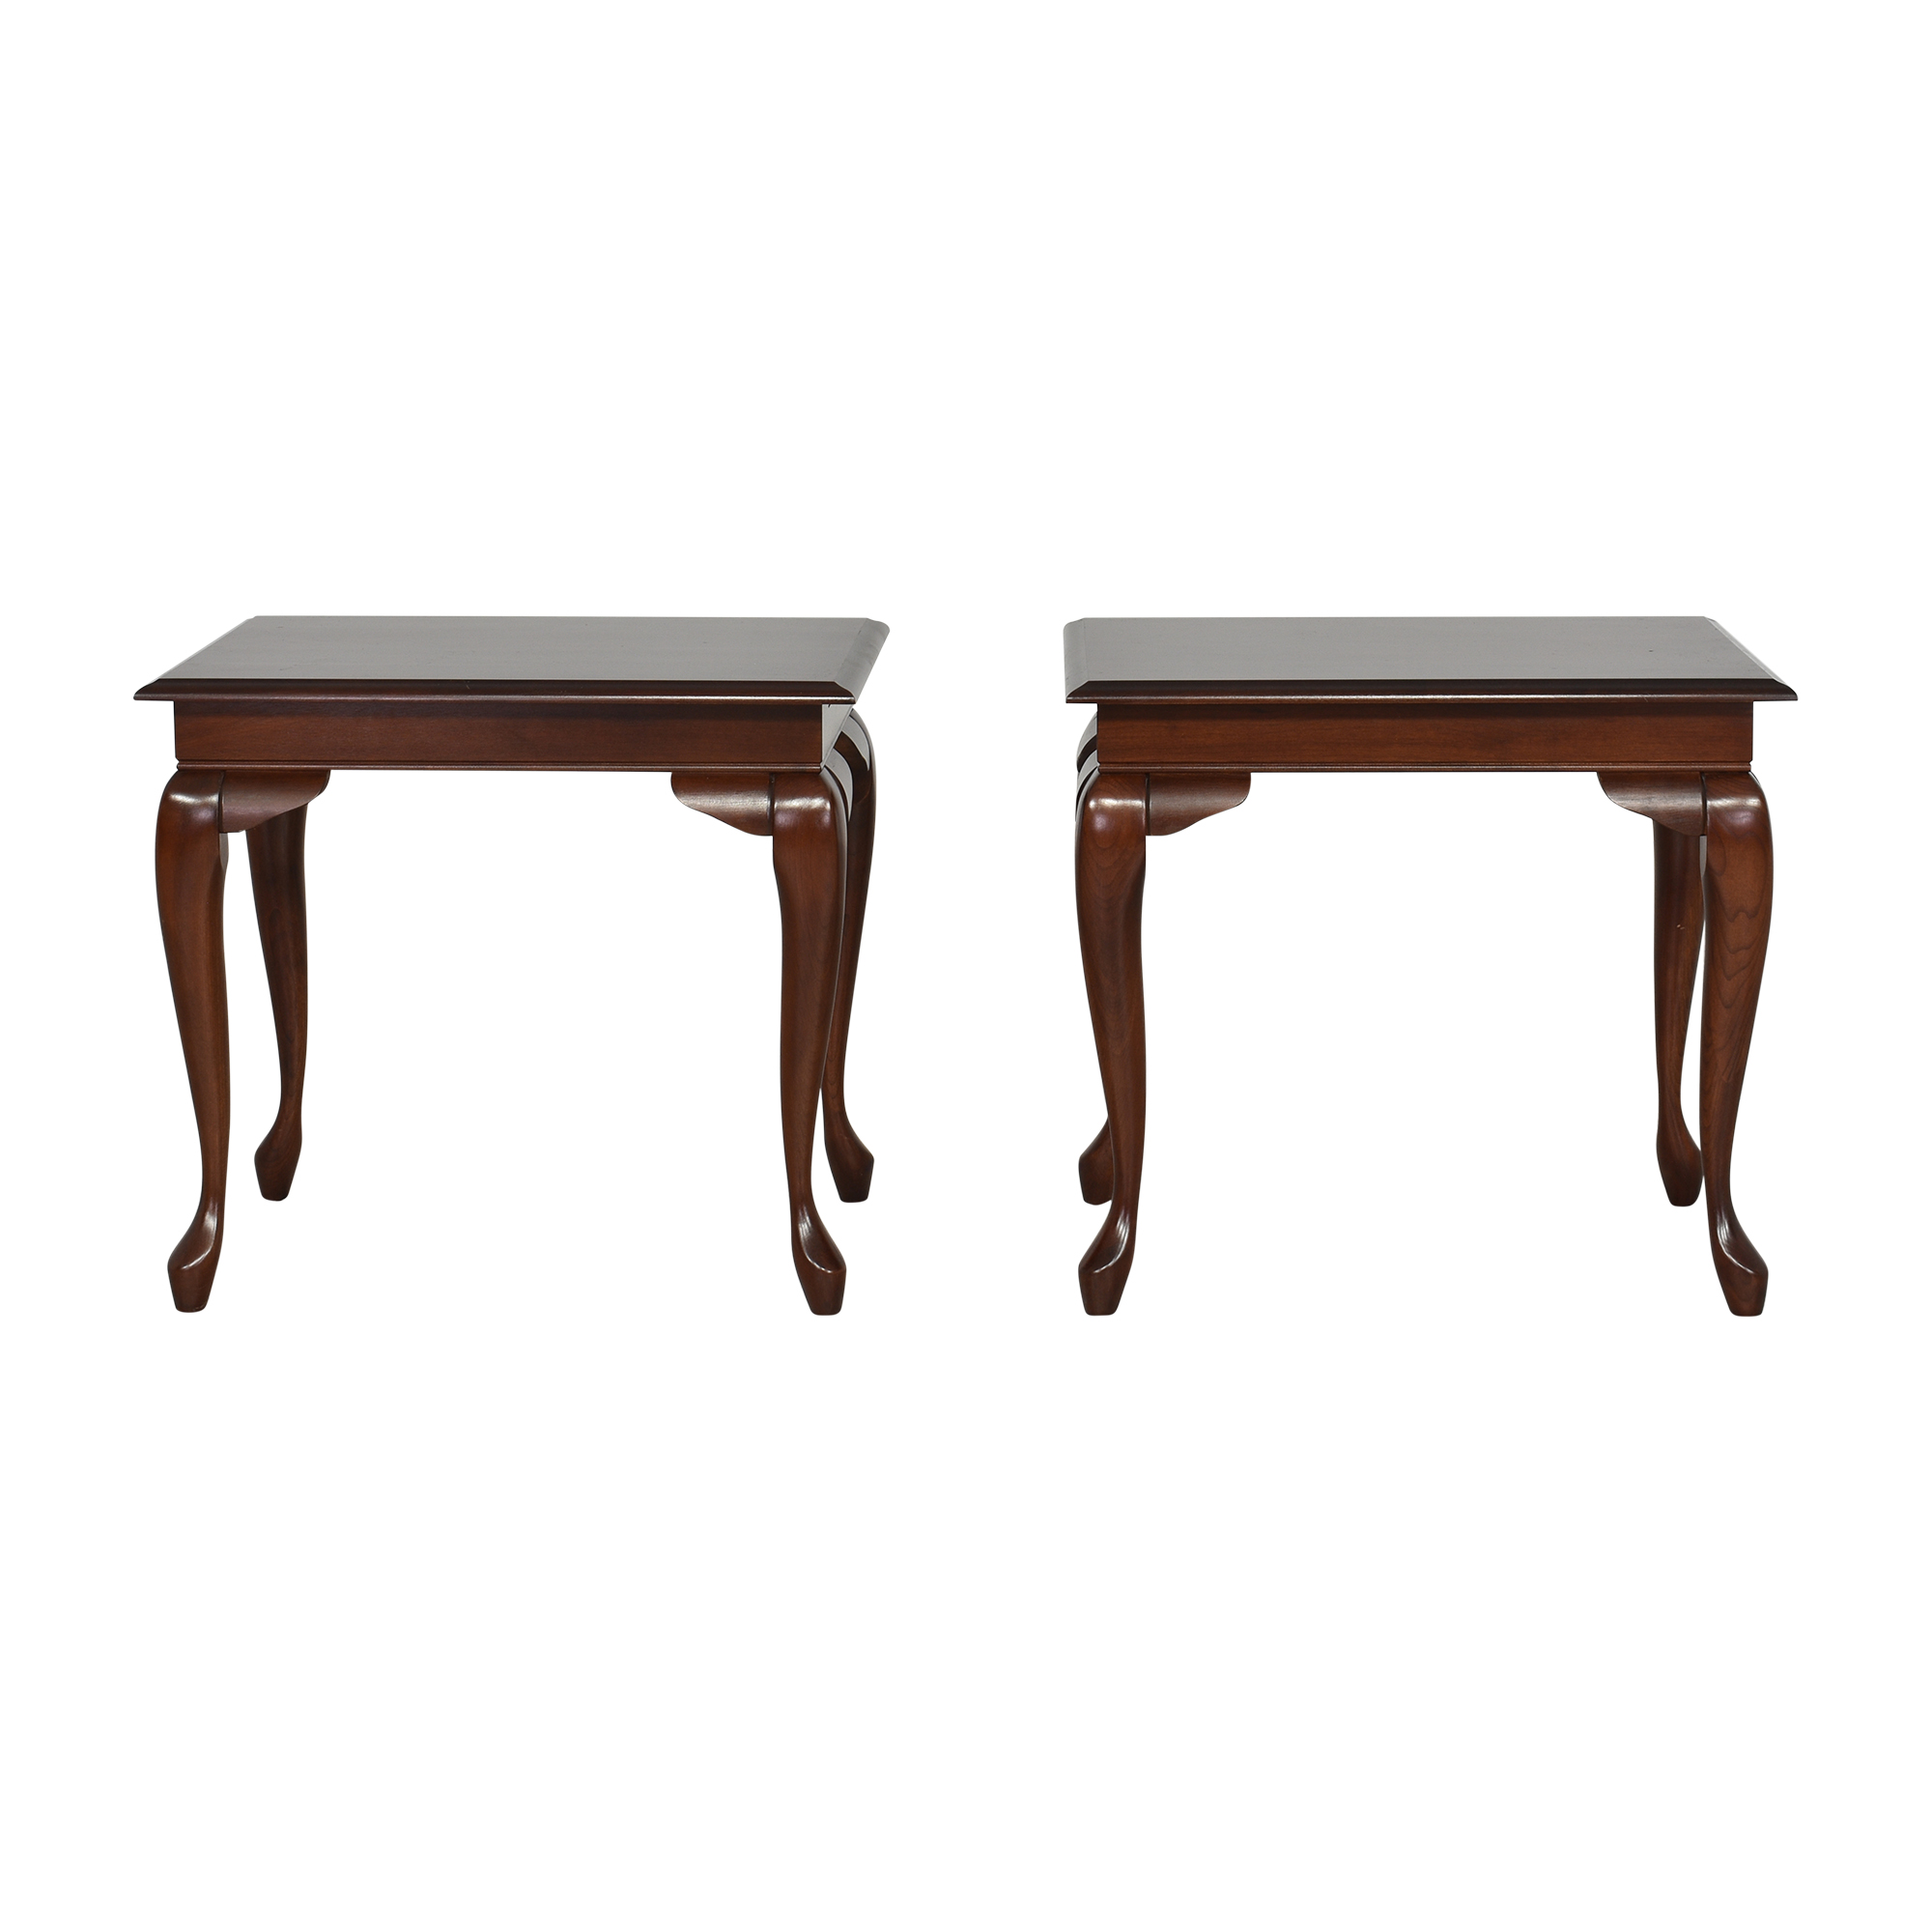 Queen Anne End Tables with Desk Extensions on sale